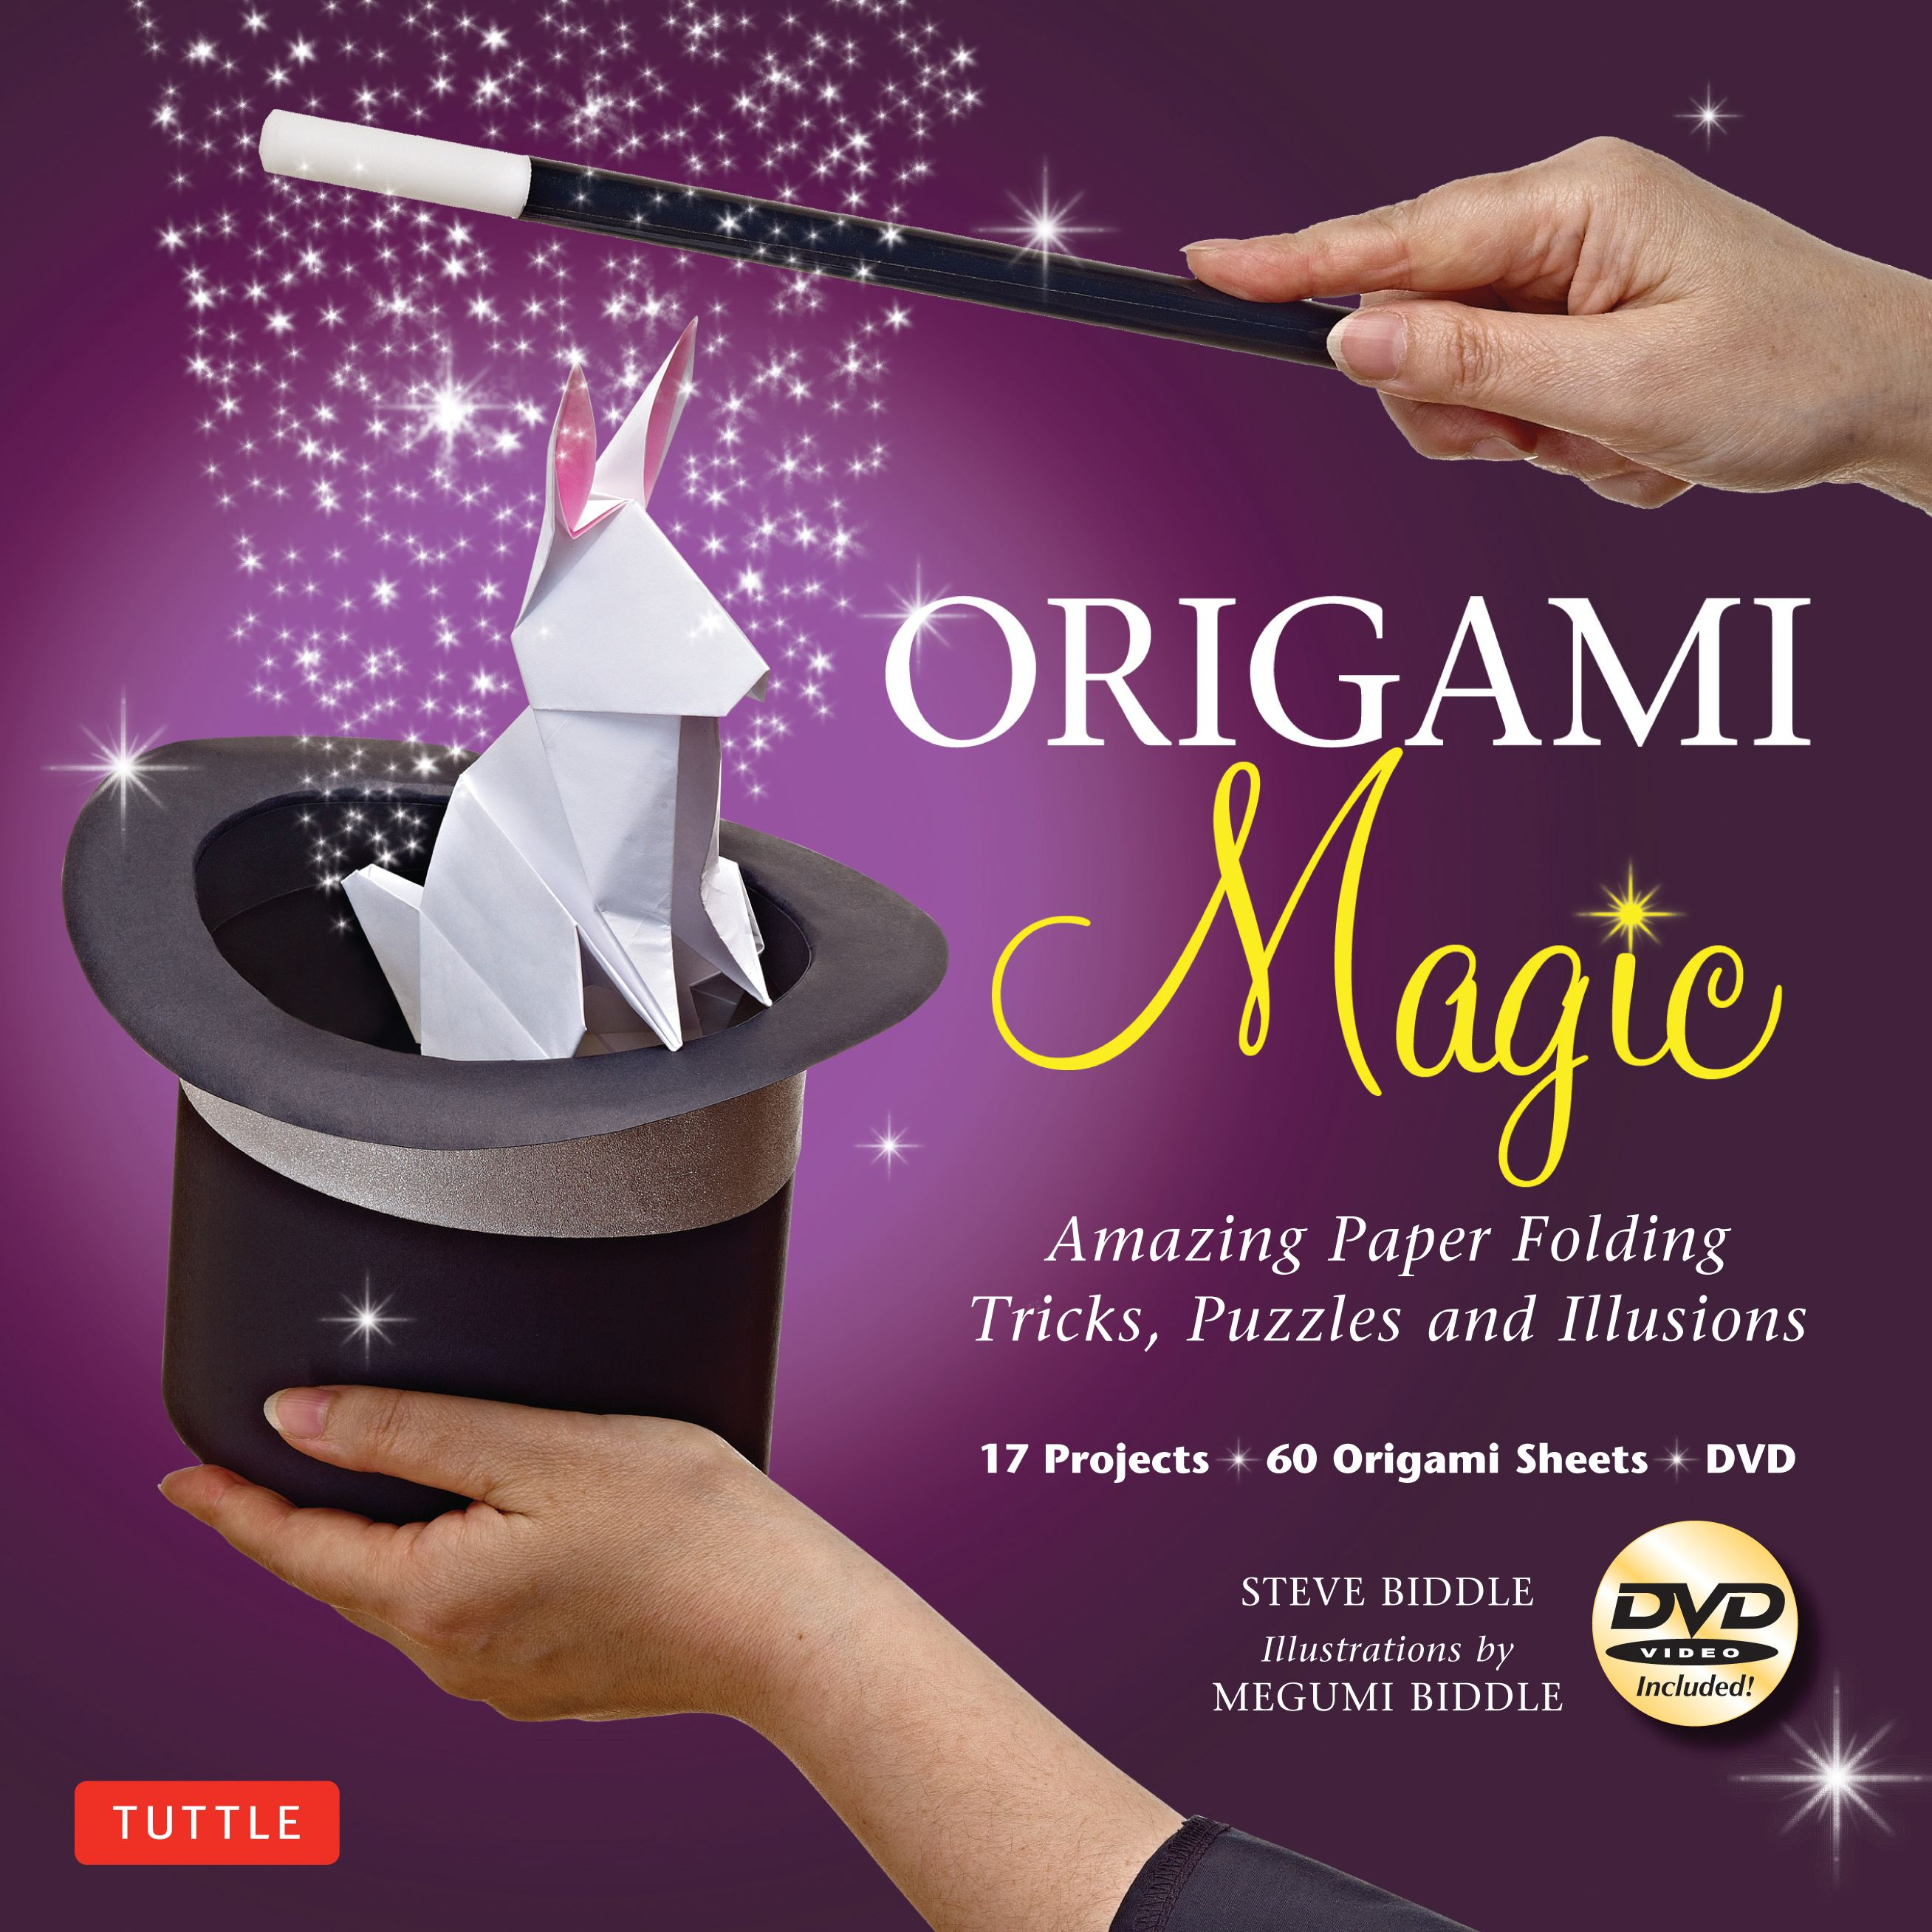 Origami Magic Kit : Amazing Paper Folding Tricks, Puzzles and Illusions: Kit with Origami Book, 17 Projects, 60 Origami Papers and DVD